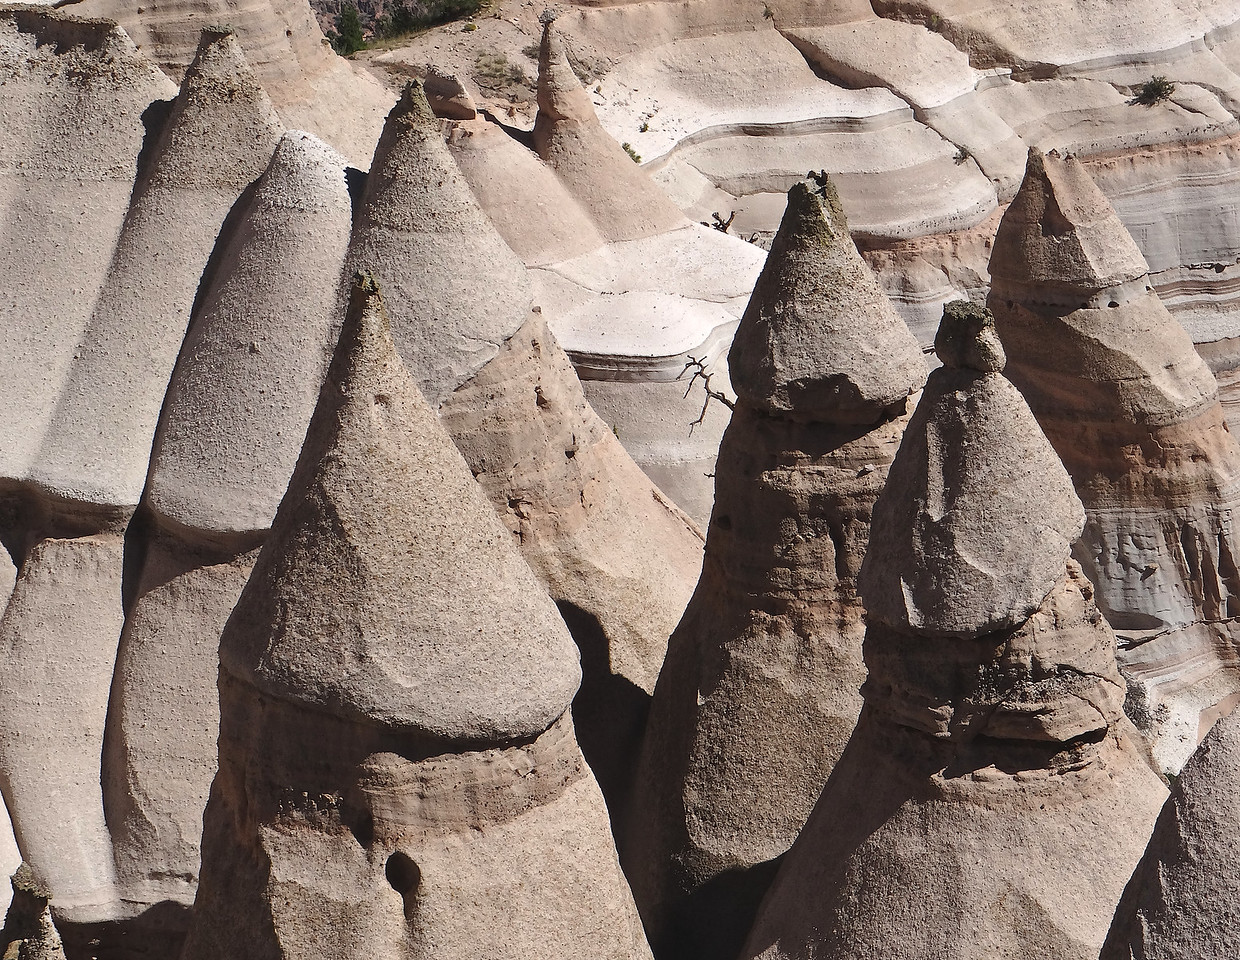 Even when you see that dead tree, it's hard to grasp the scale of these hoo doos in Tent Rocks Park, NM